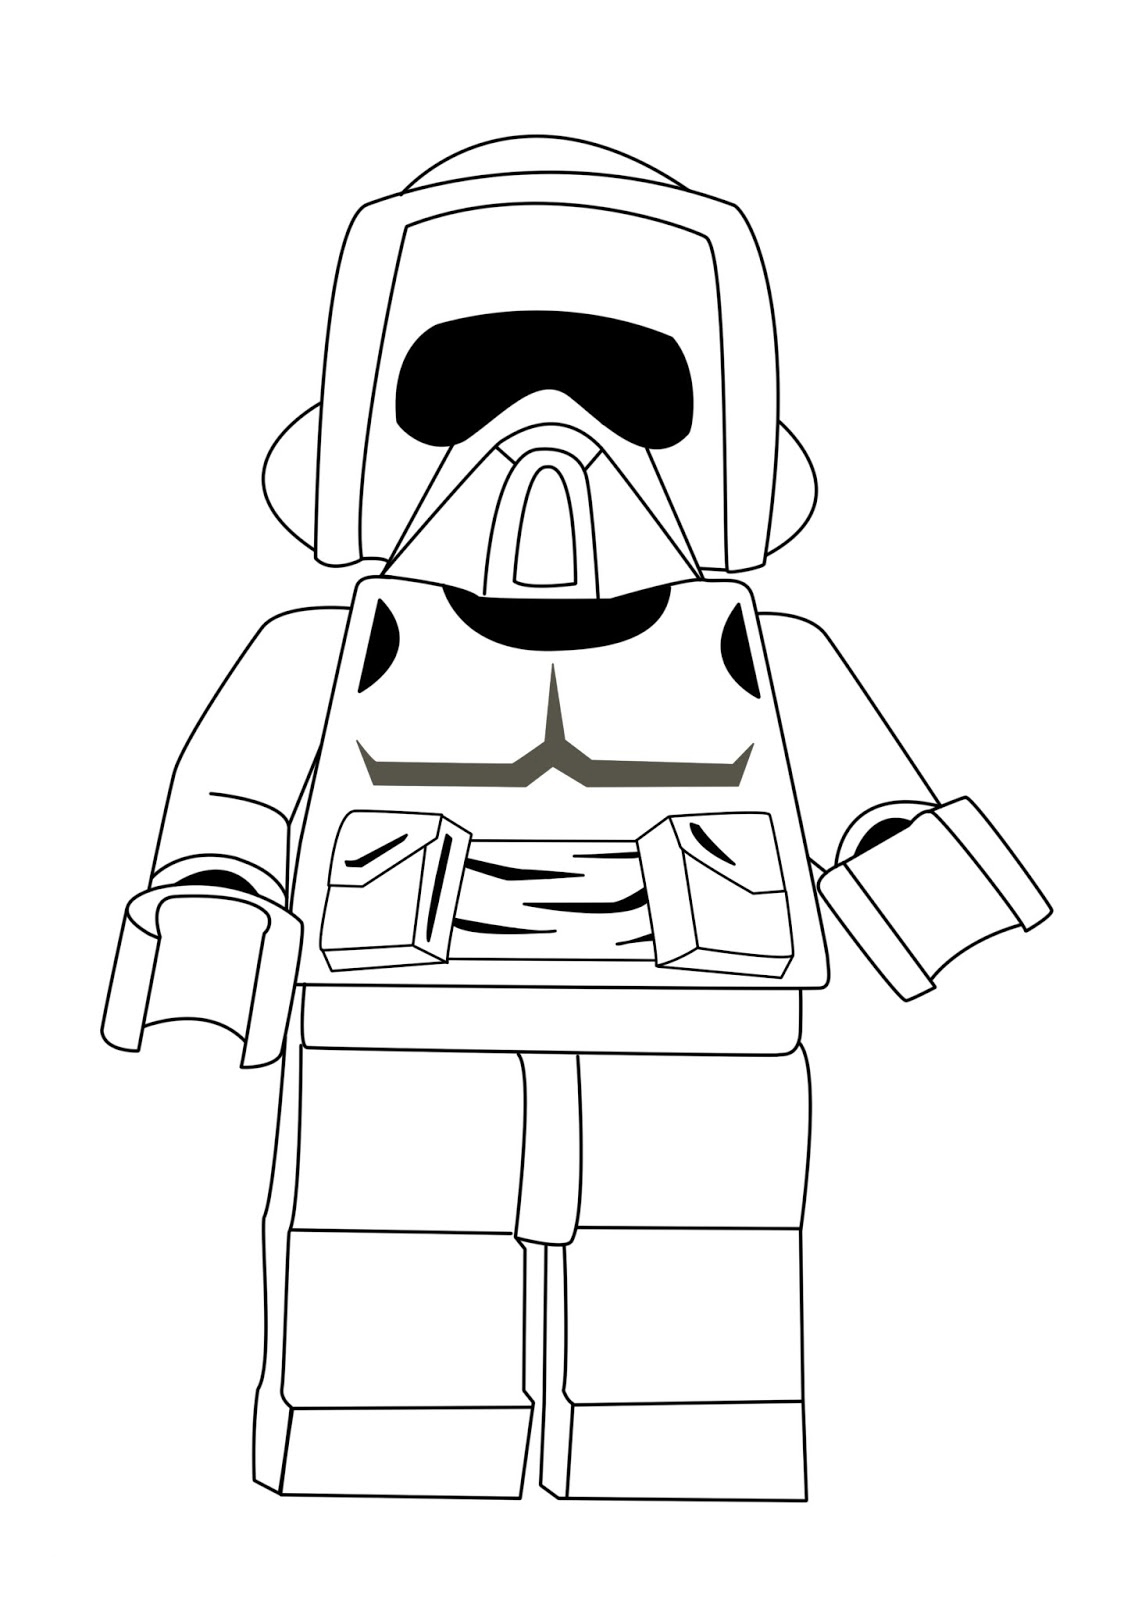 lego star wars pictures to colour lego star wars coloring pages to download and print for free star wars to lego pictures colour